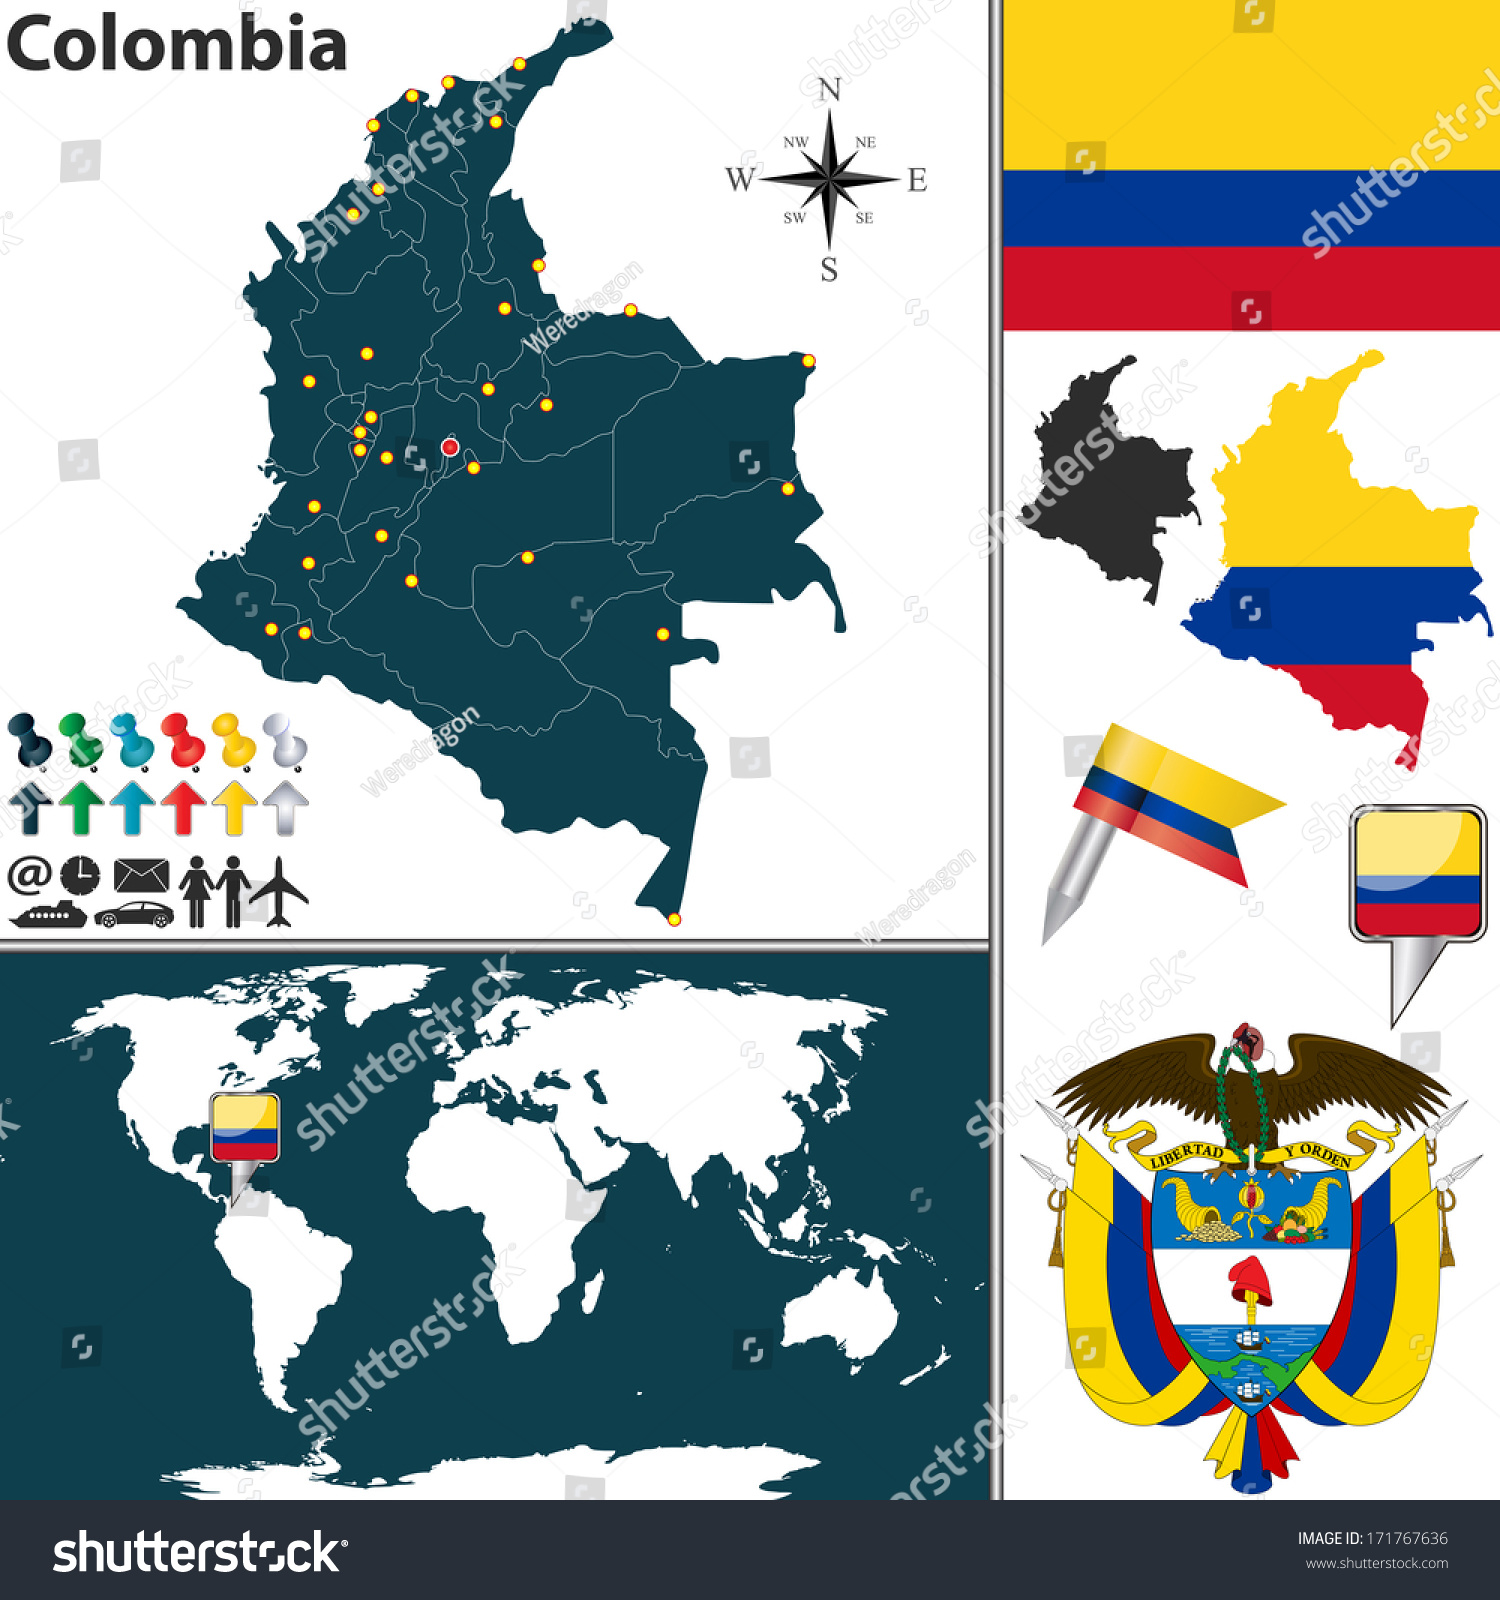 Vector map colombia regions coat arms vectores en stock 171767636 vector map colombia regions coat arms vectores en stock 171767636 shutterstock gumiabroncs